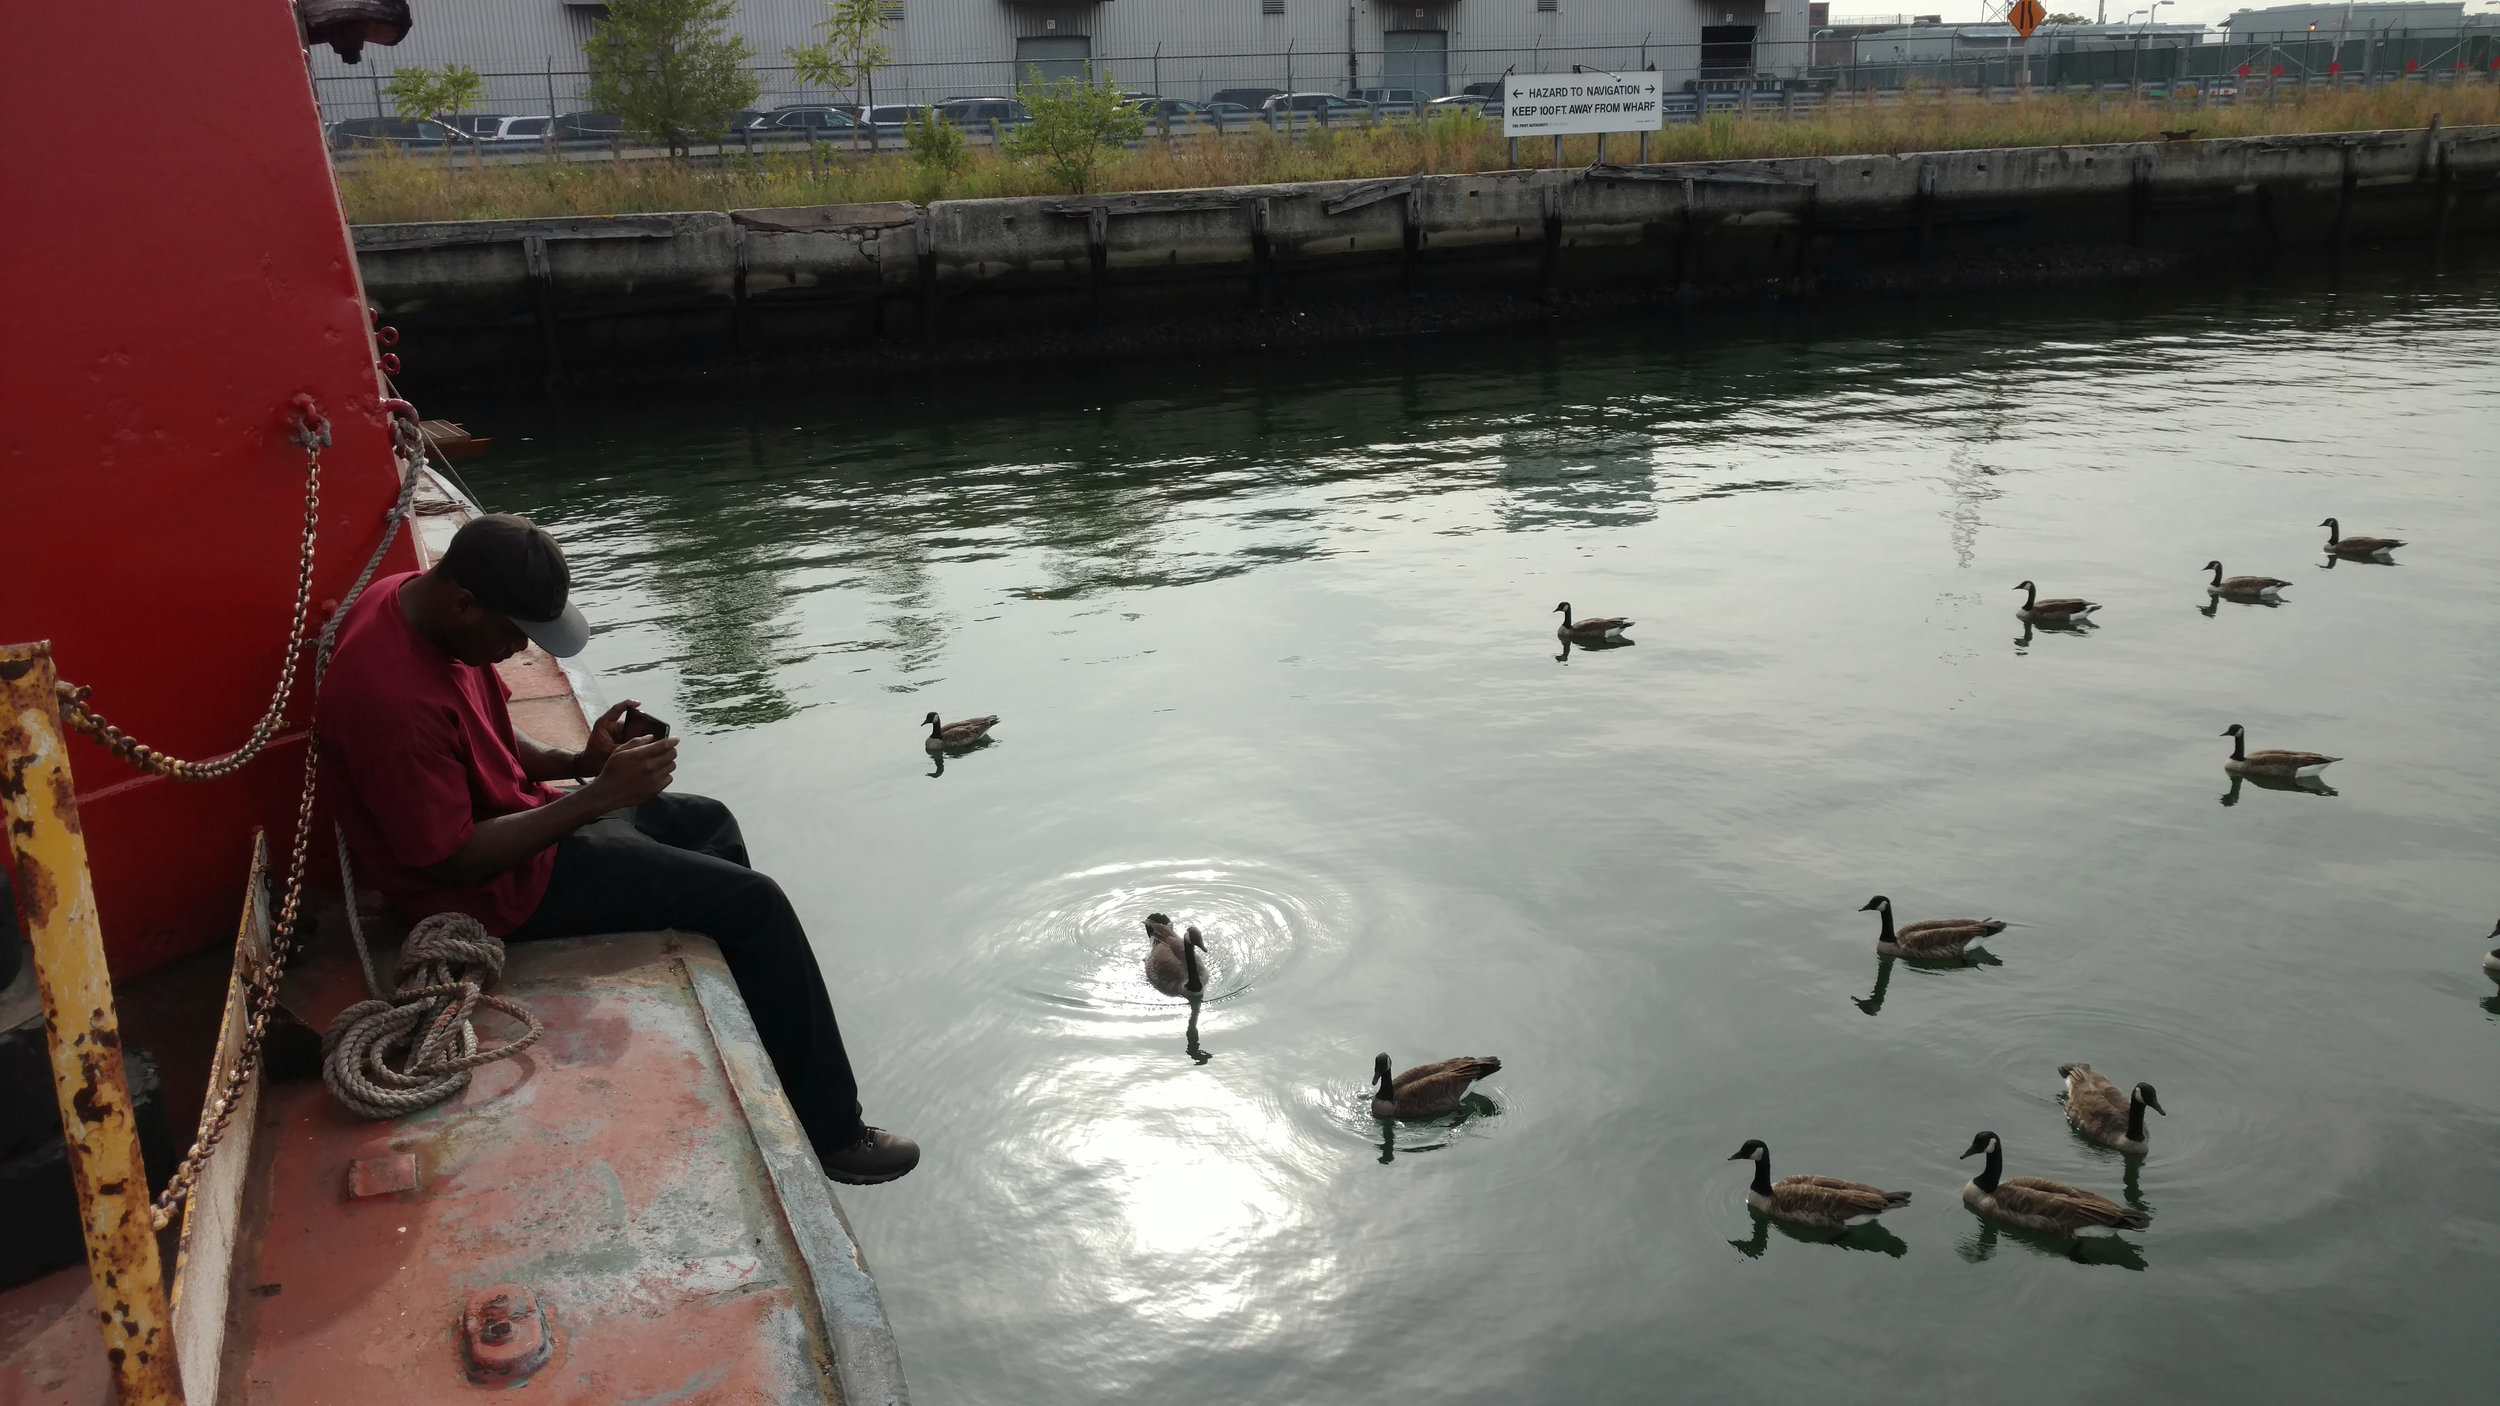 Osiris mosley taking a break and photographing geese and large schools of fish under them